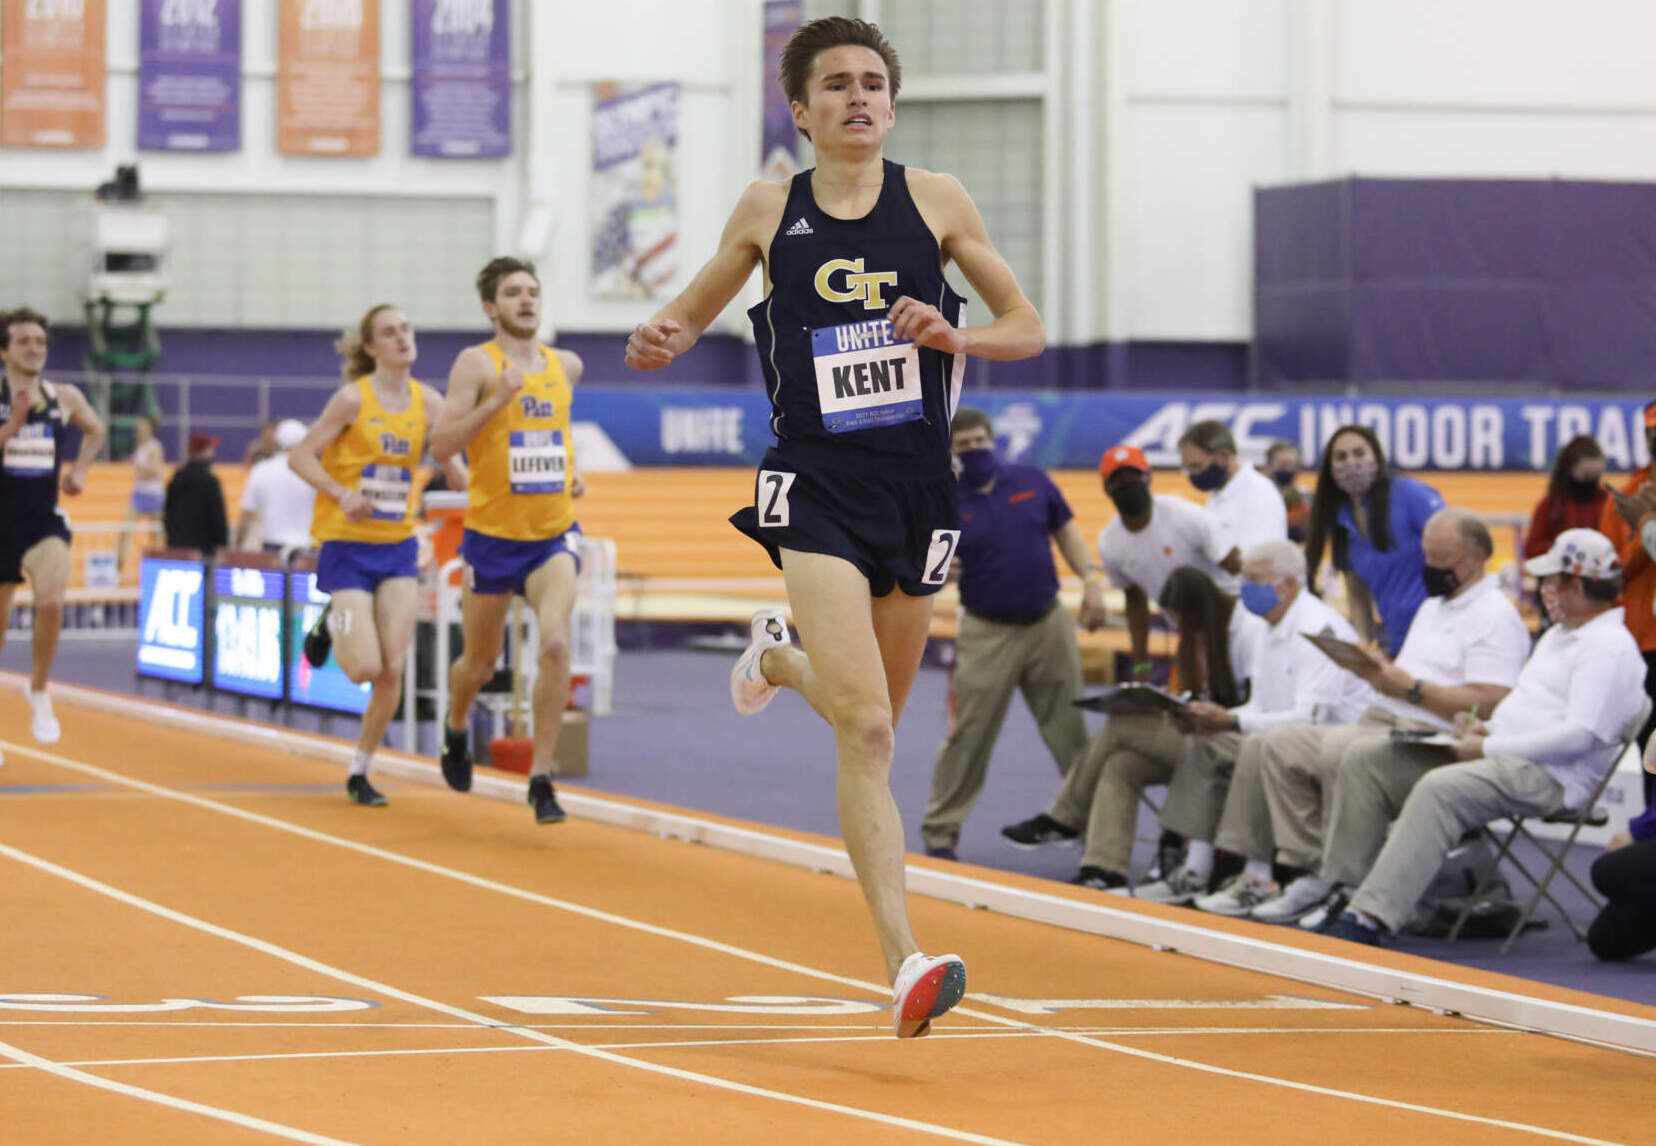 Fegans & Kent Garner Conference Honors at Final Day of ACC Indoor Championships